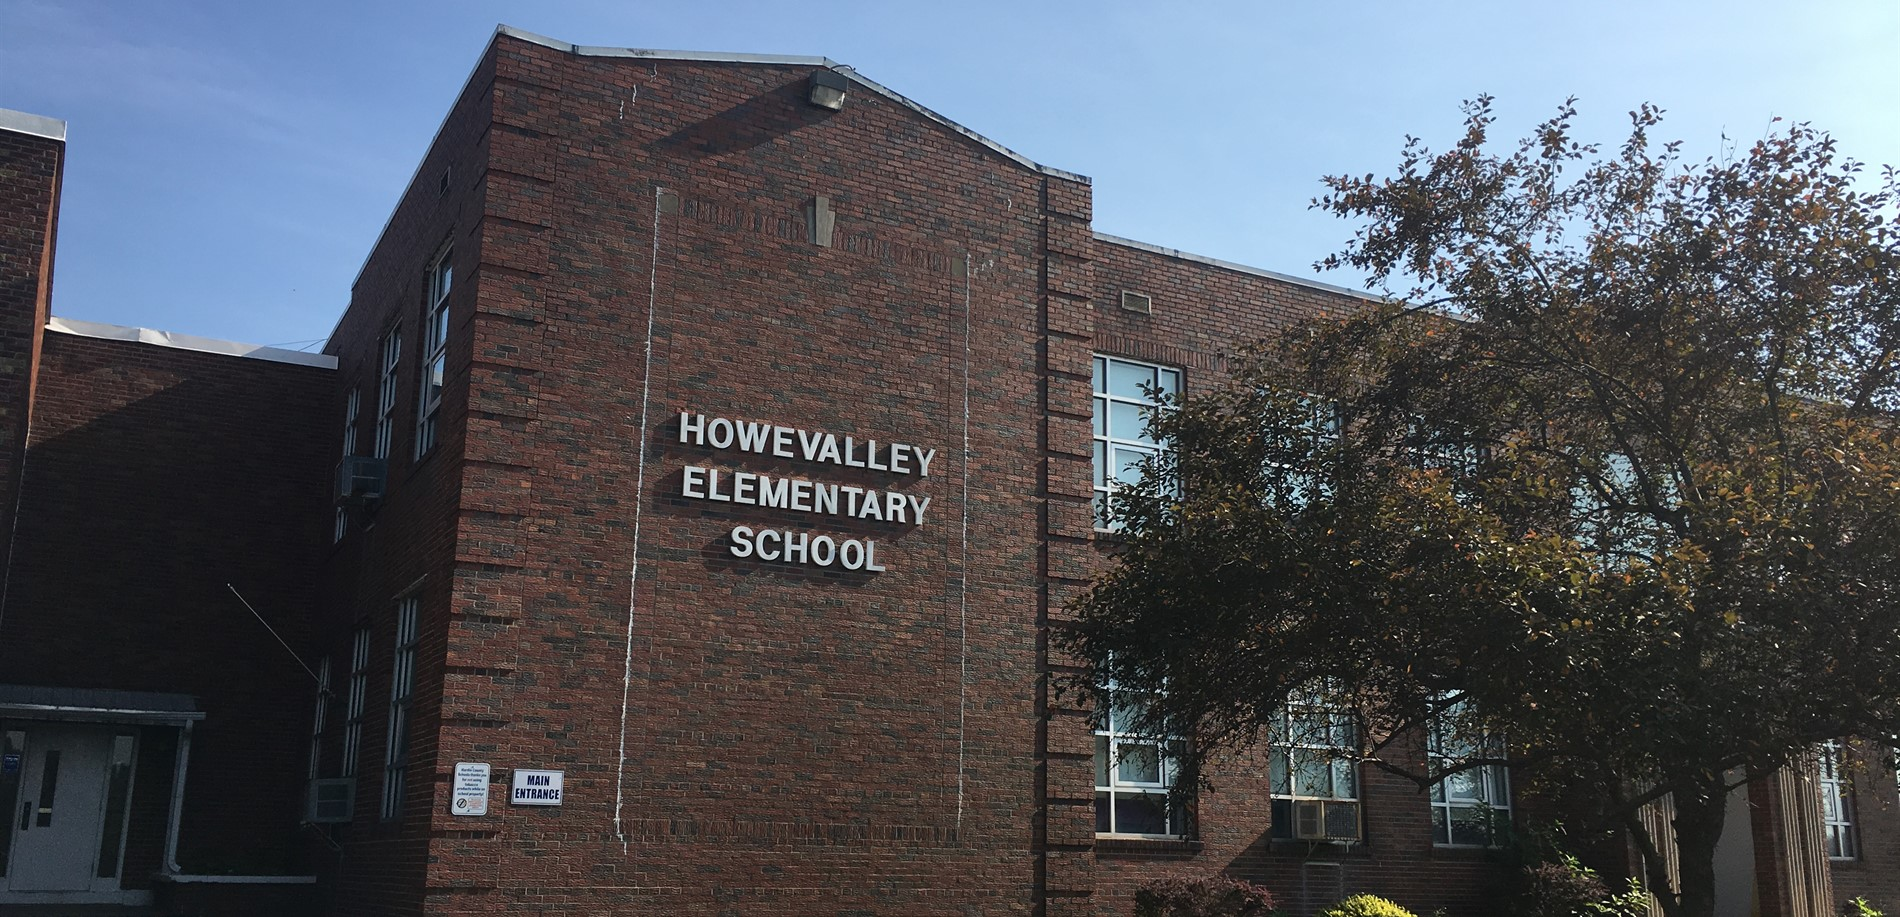 The former Howevalley